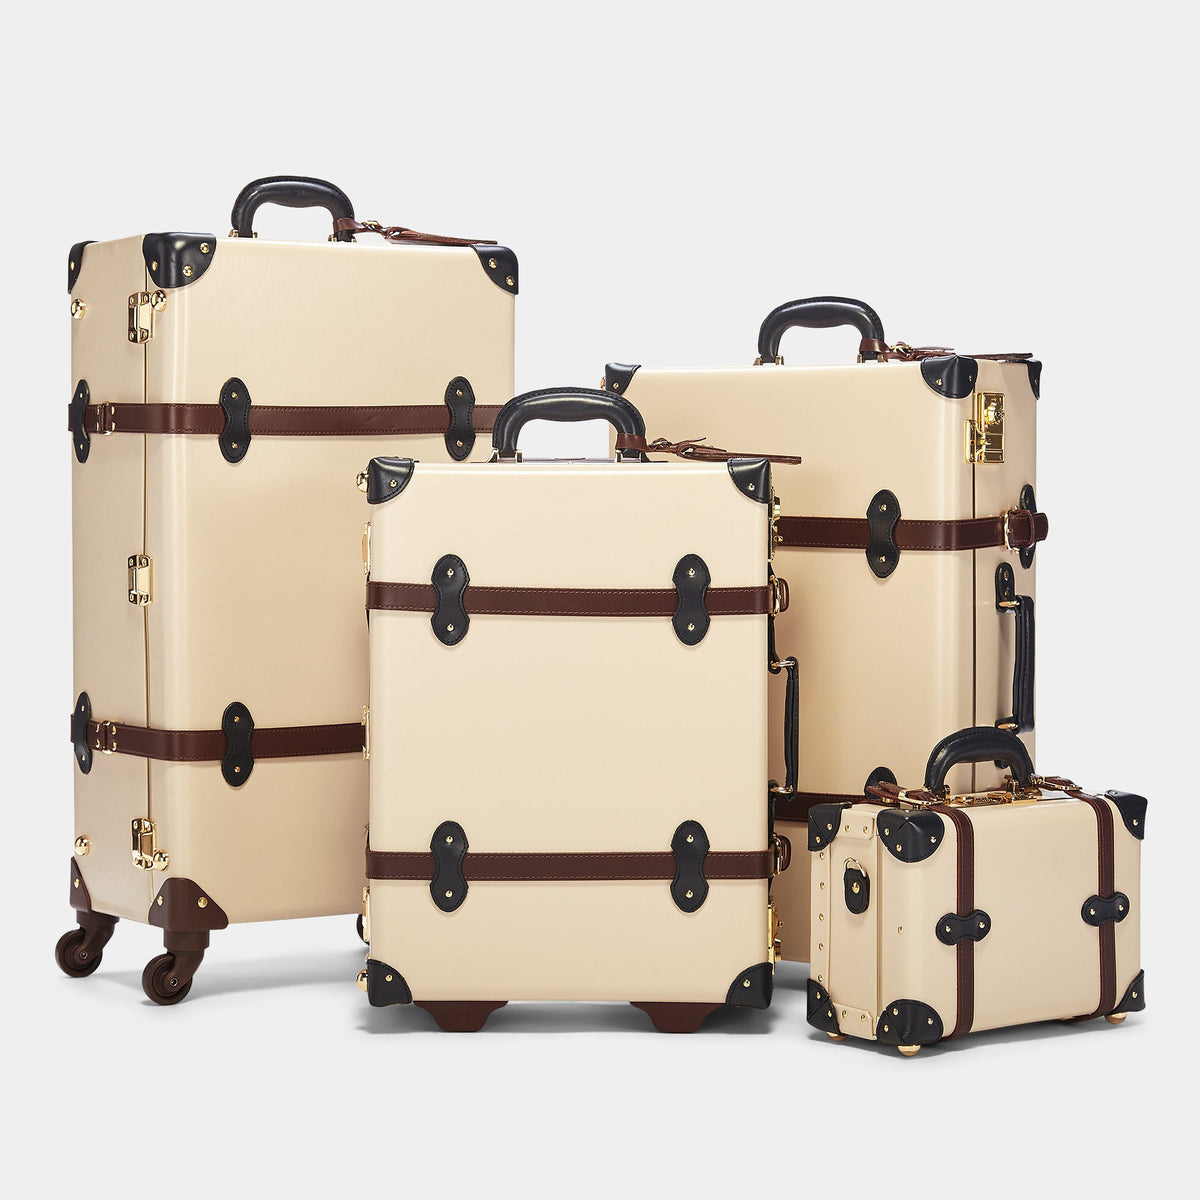 The Architect Stowaway  in Cream -Vintage Style Leather Case - Stowaway with matching Architect Cases